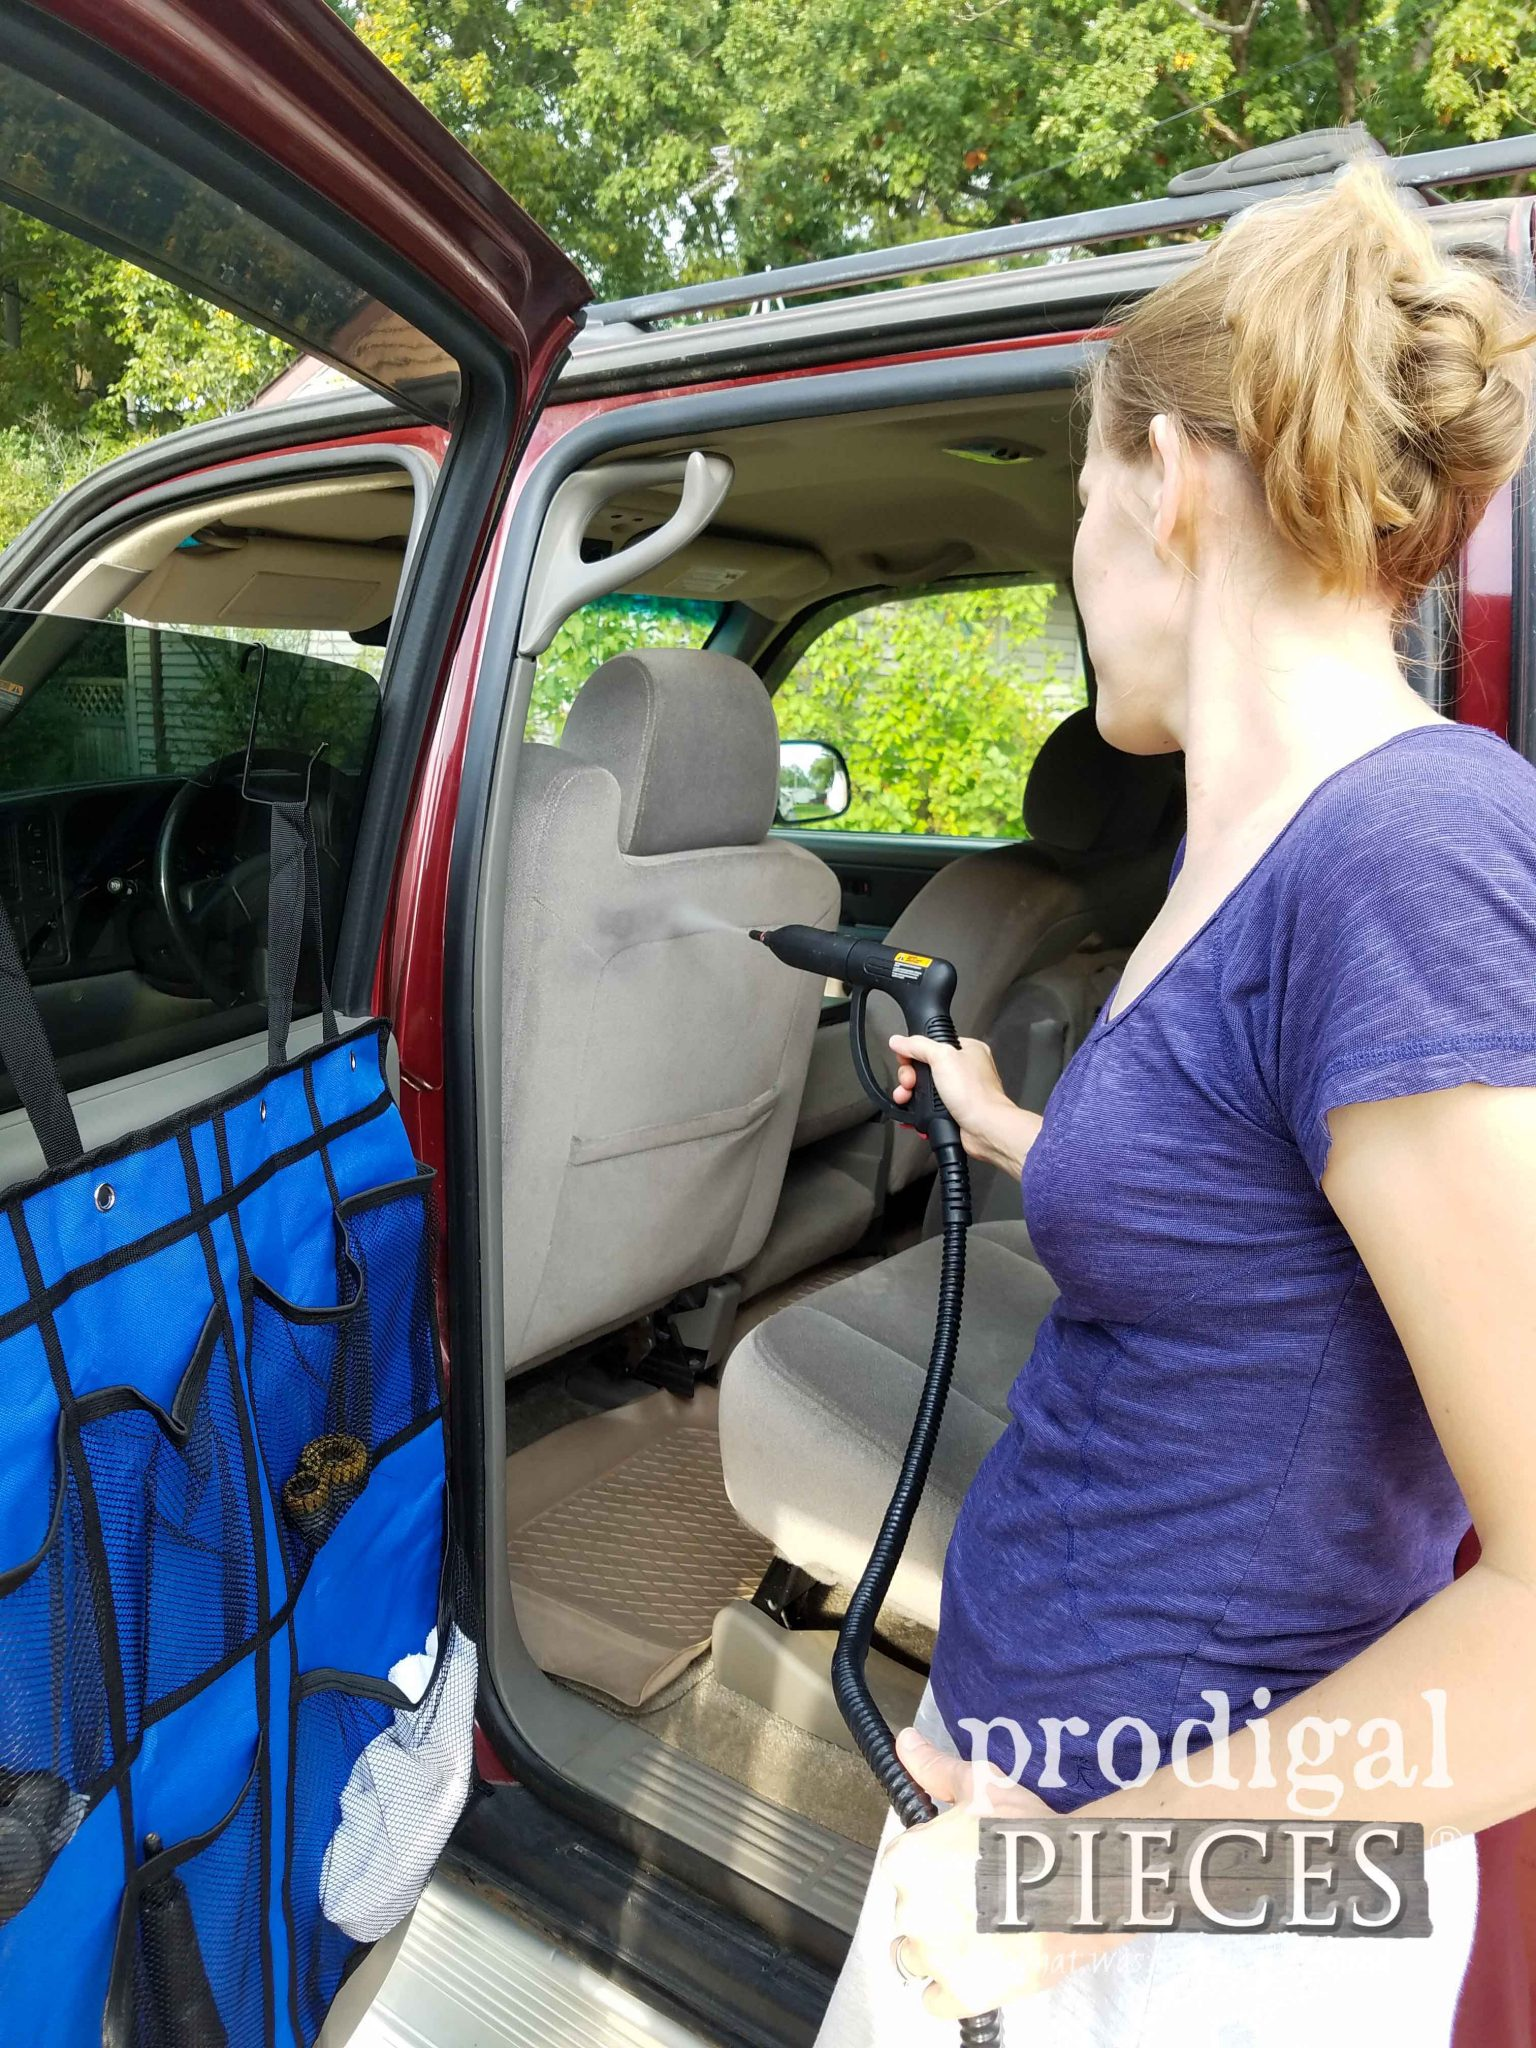 Steam Clean your Vehicle for a Chemical-Free Clean by Prodigal Pieces | prodigalpieces.com